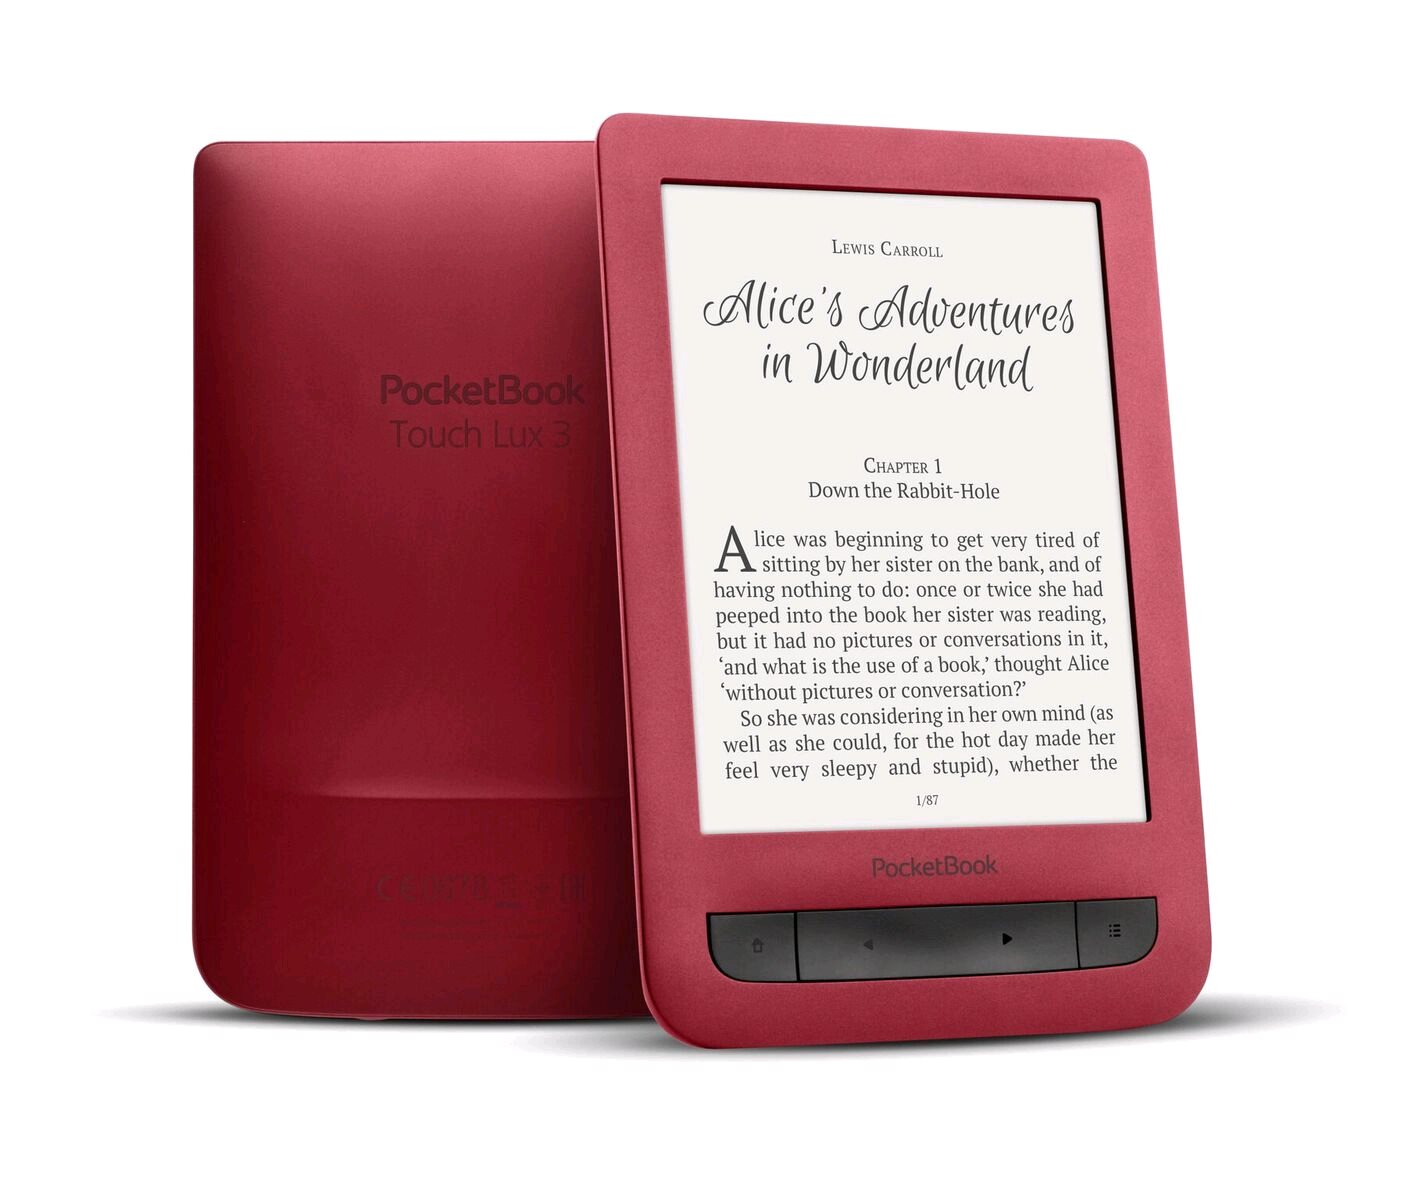 Pocketbook 626 Touch Lux 3, Carta E-Ink, Ruby red